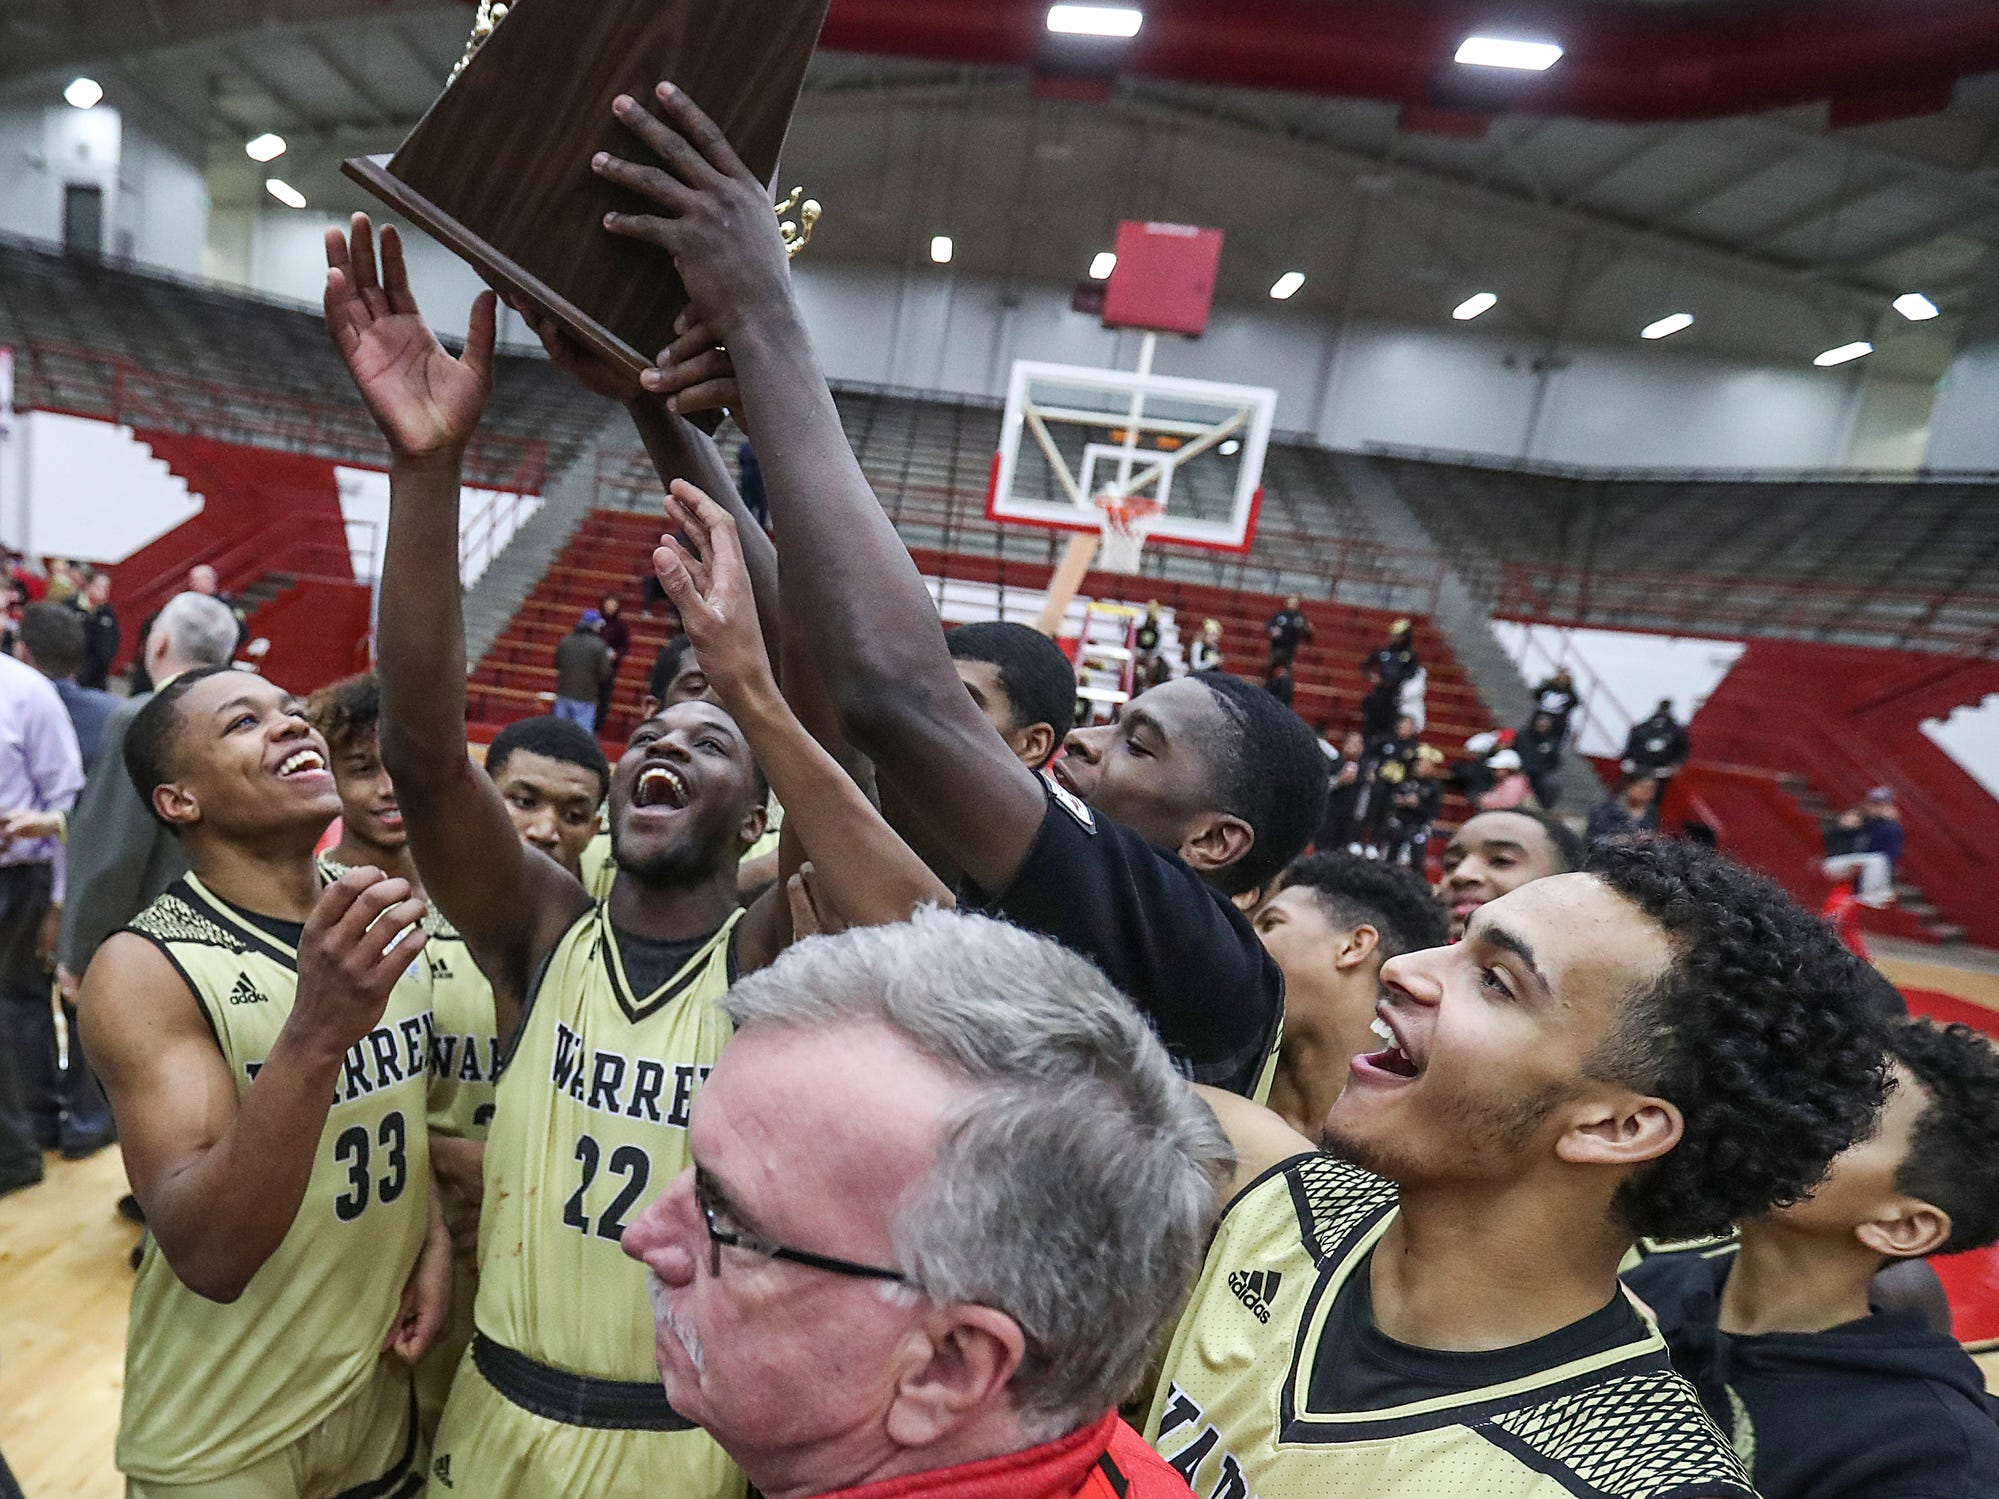 The Warren Central Warriors hold up the trophy after winning the Marion County tournament title at Southport High School in Indianapolis, Monday, Jan. 14, 2019. The victory marks a 46-game winning streak for the Warriors, the third-longest in state history.